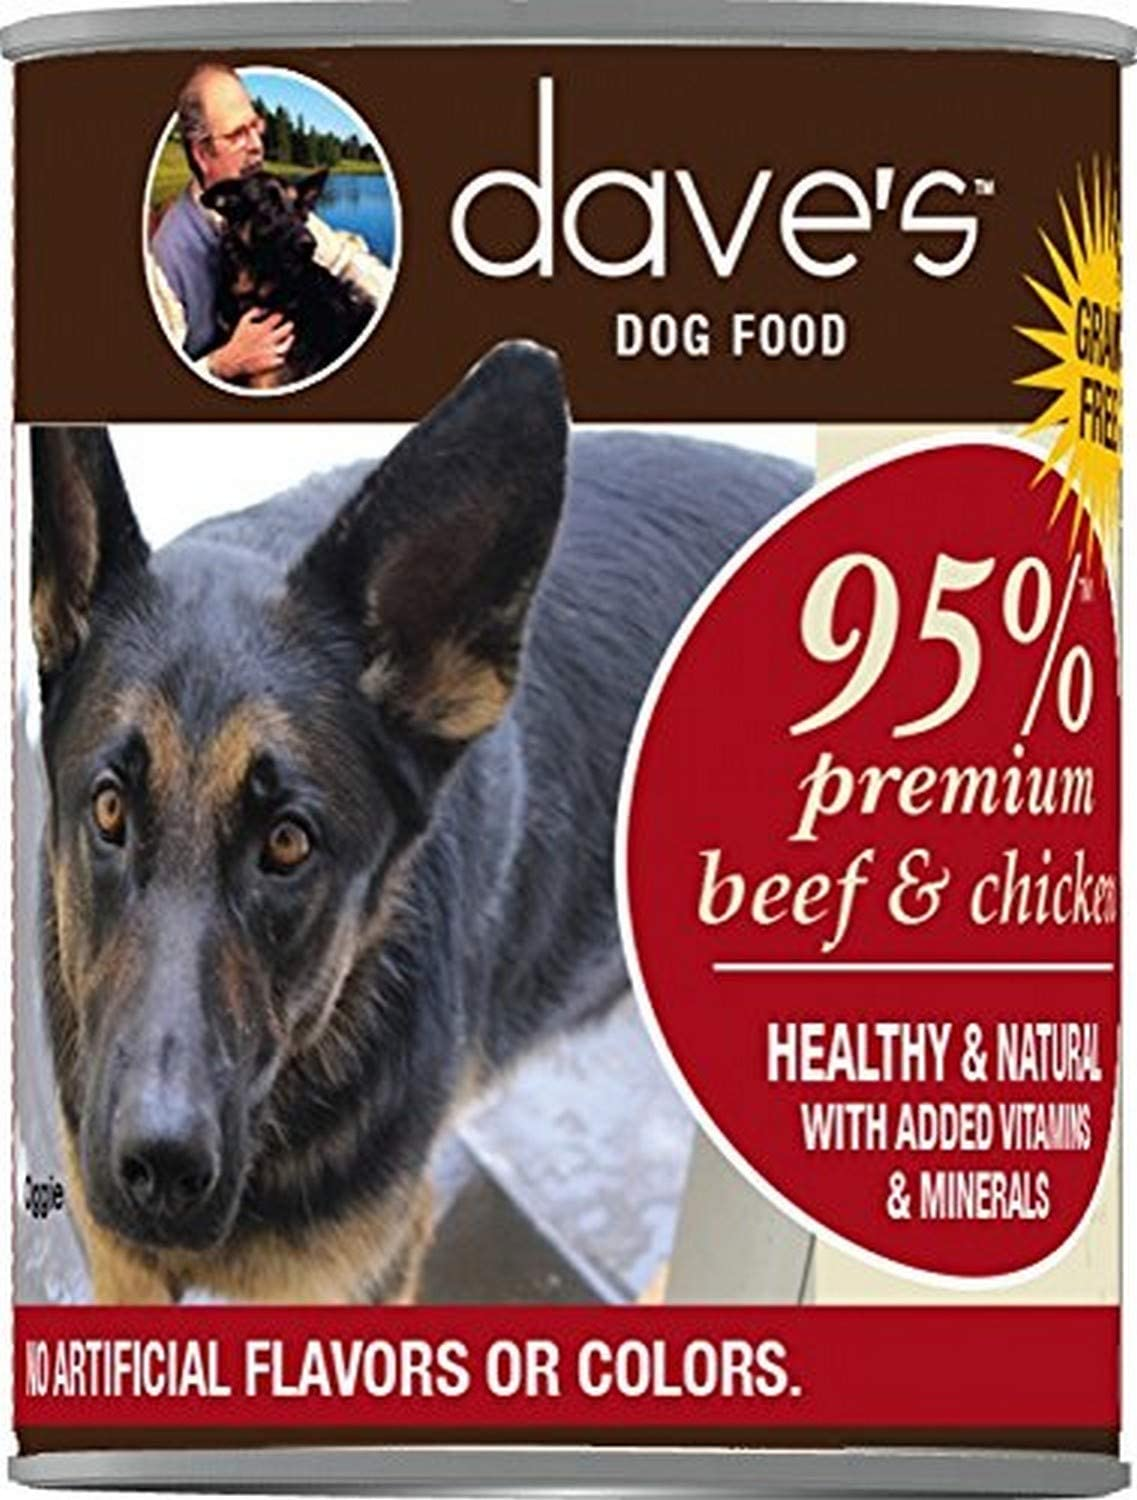 Dave's Premium Beef & Chicken 95% Meat for Dogs, 13 Oz Can (Case of 12)